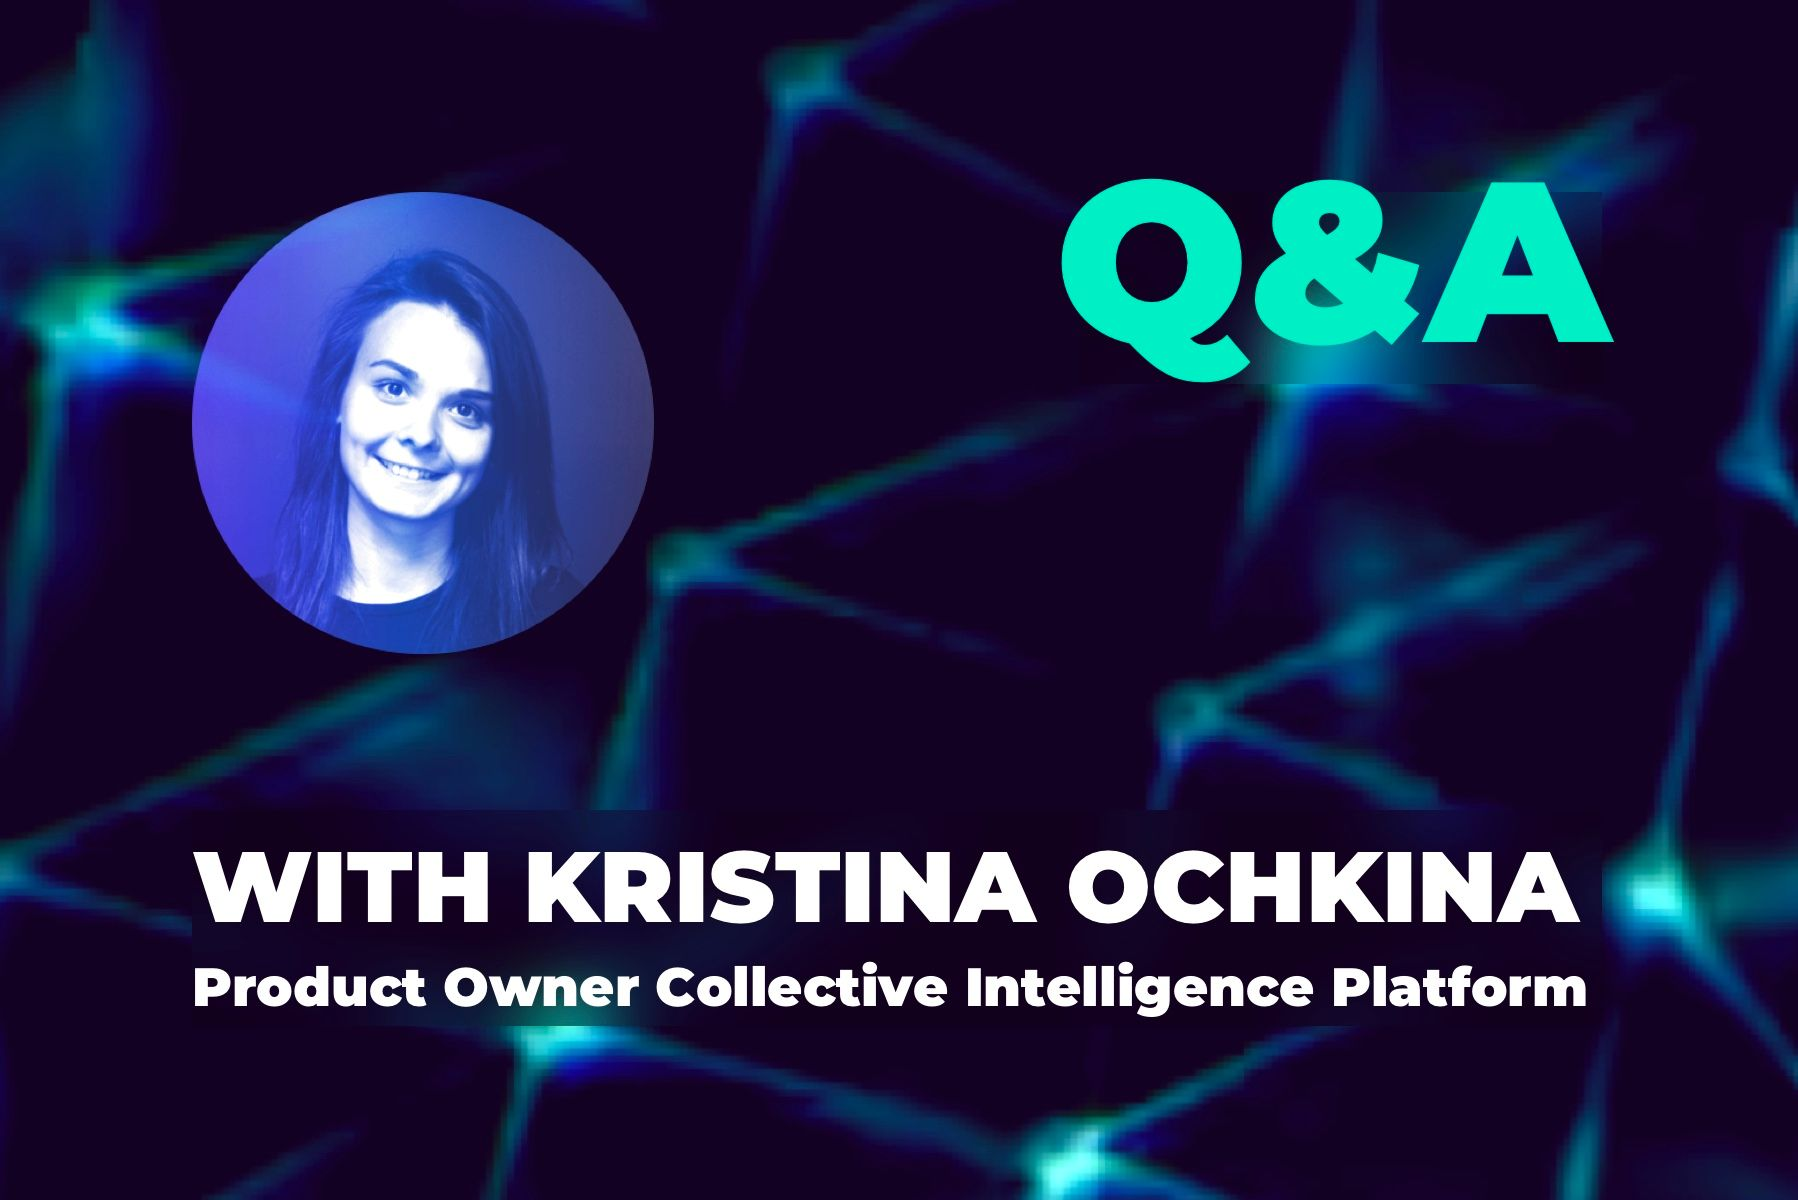 Q&A session with Kristina, Product Owner of Collective Intelligence Platform